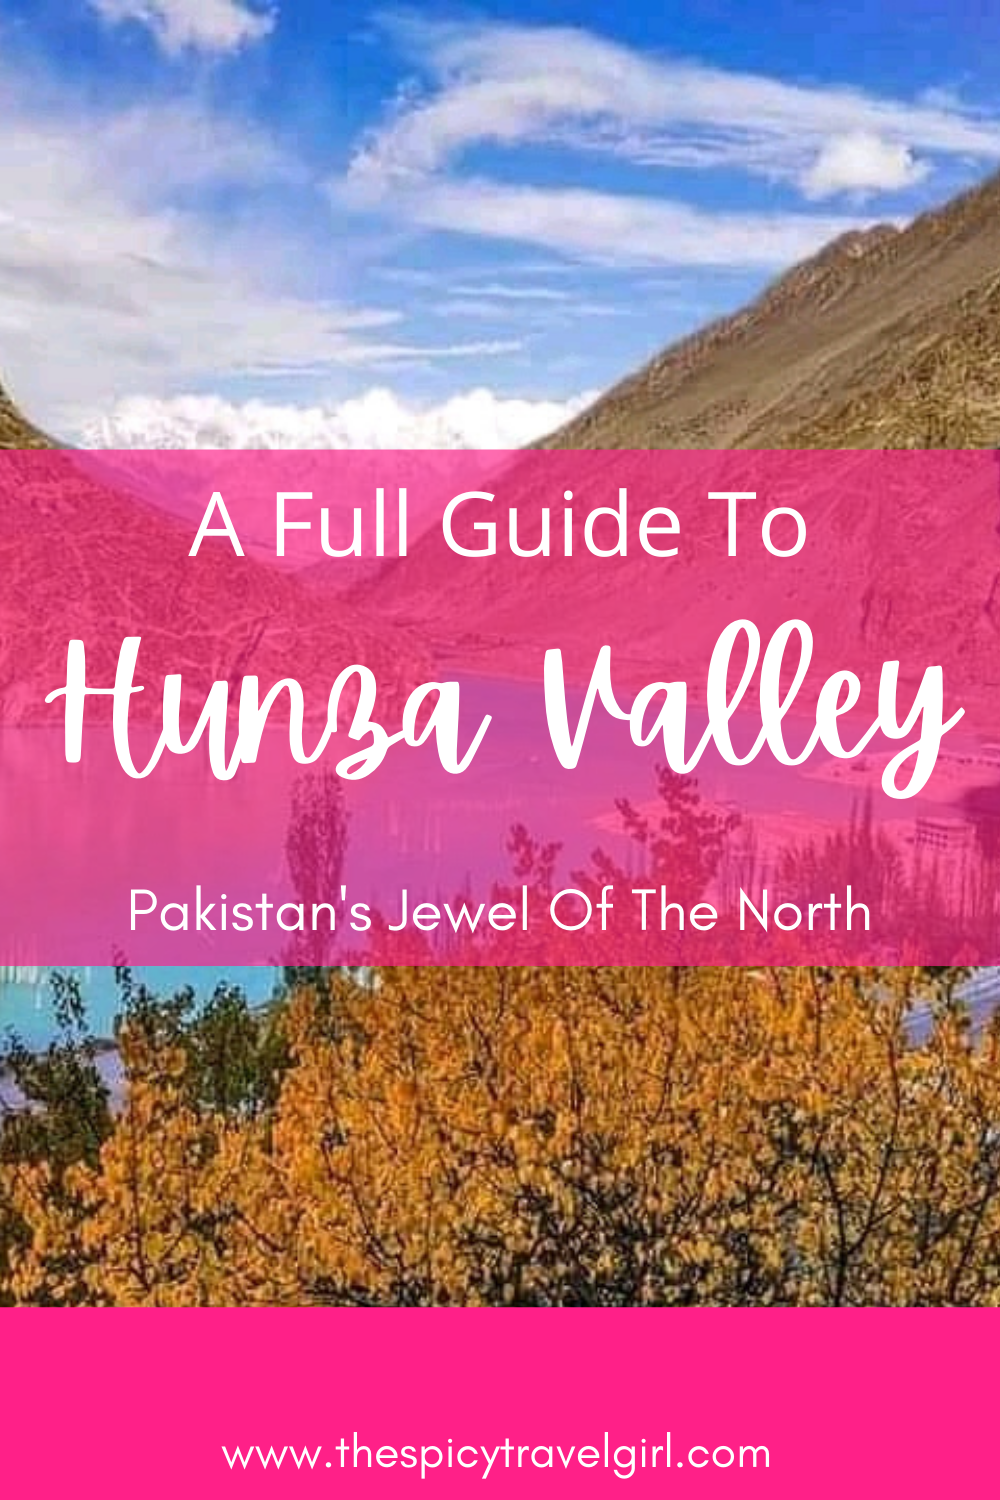 Pakistan's Hunza Valley is world famous for its exceptional beauty. Find out everything you need to know to visit beautiful Hunza Valley Pakistan in this guide! #pakistantravel #pakistanbeautifulplaces #hunzavalleybeauty